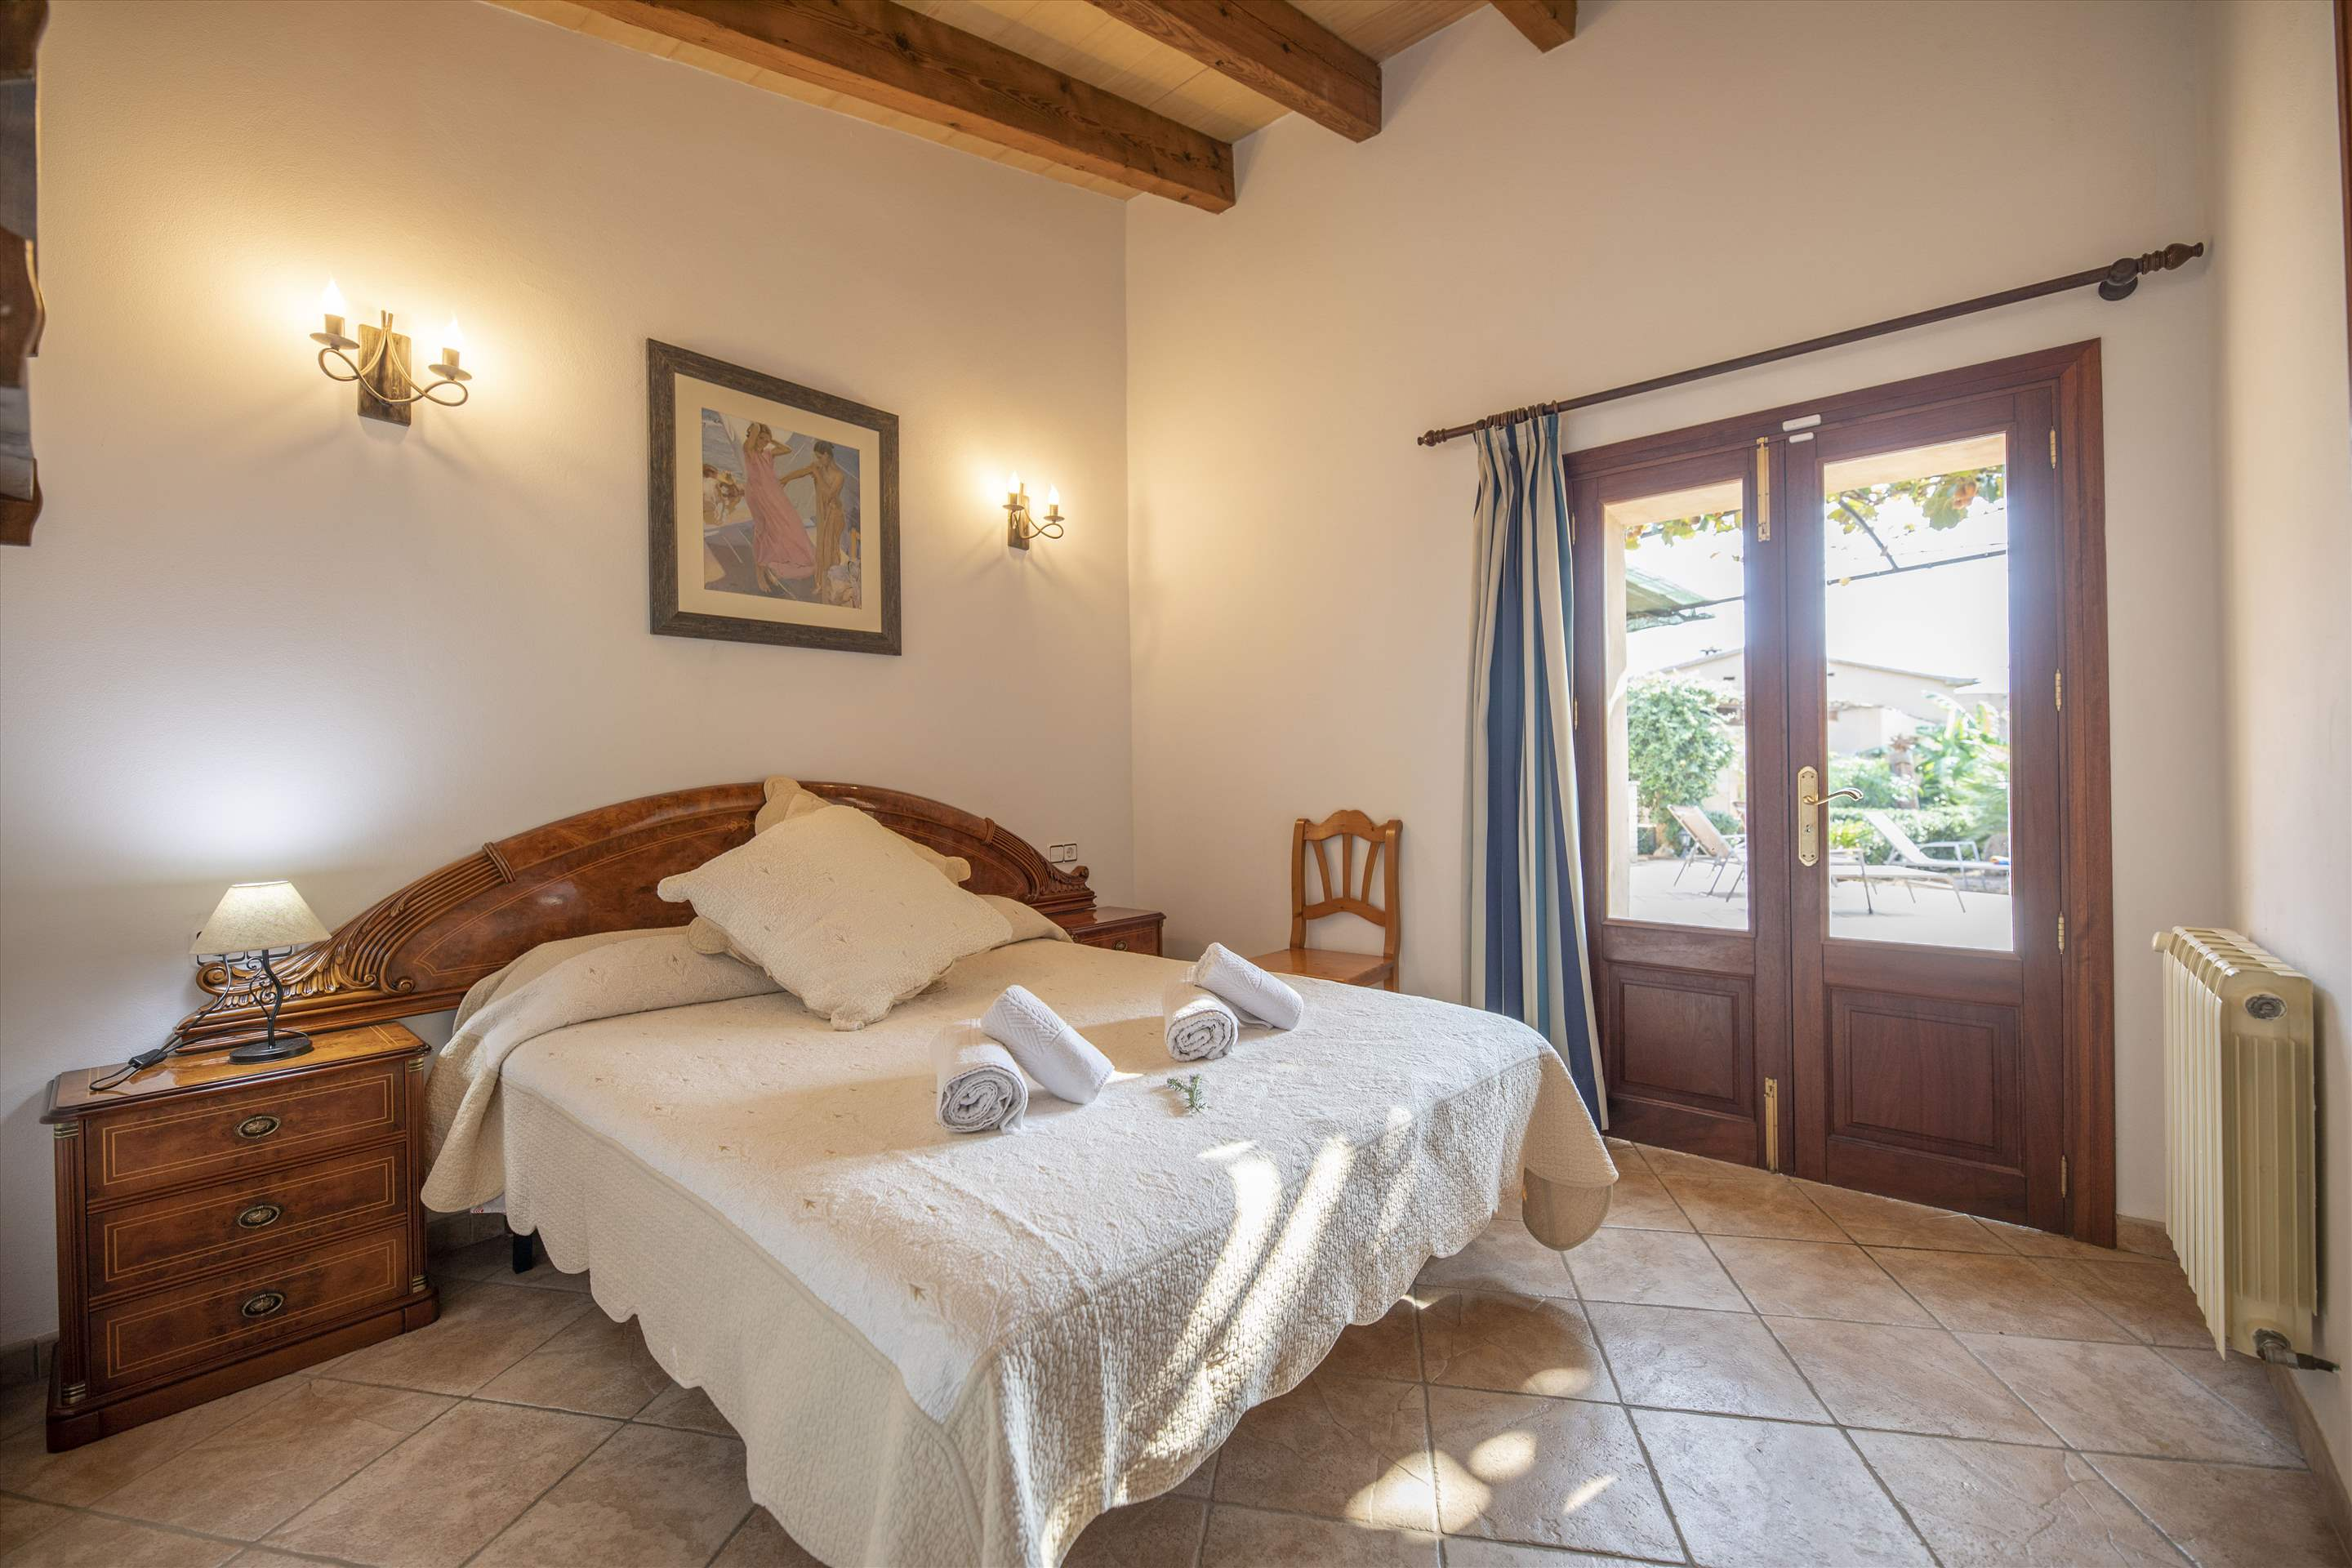 Sa Portella - SO1479, 3 bedroom villa in Soller & Deia, Majorca Photo #15